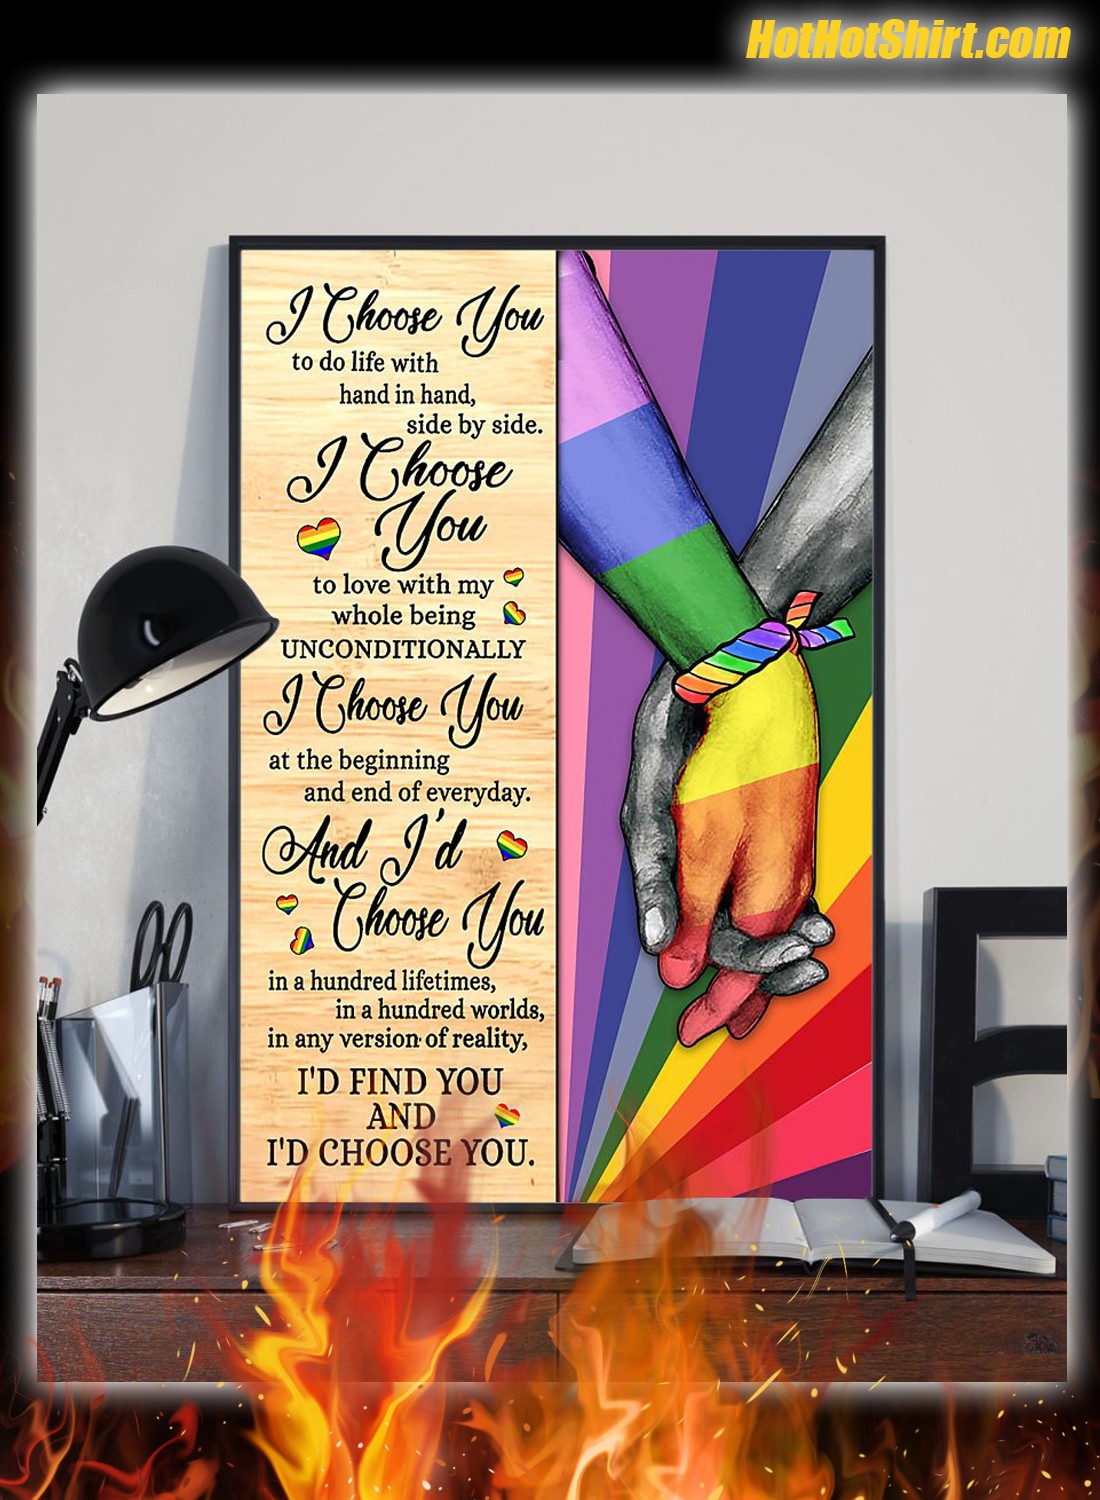 LGBT I Chose You To Life With Hand In Hand Side By Side Poster 1